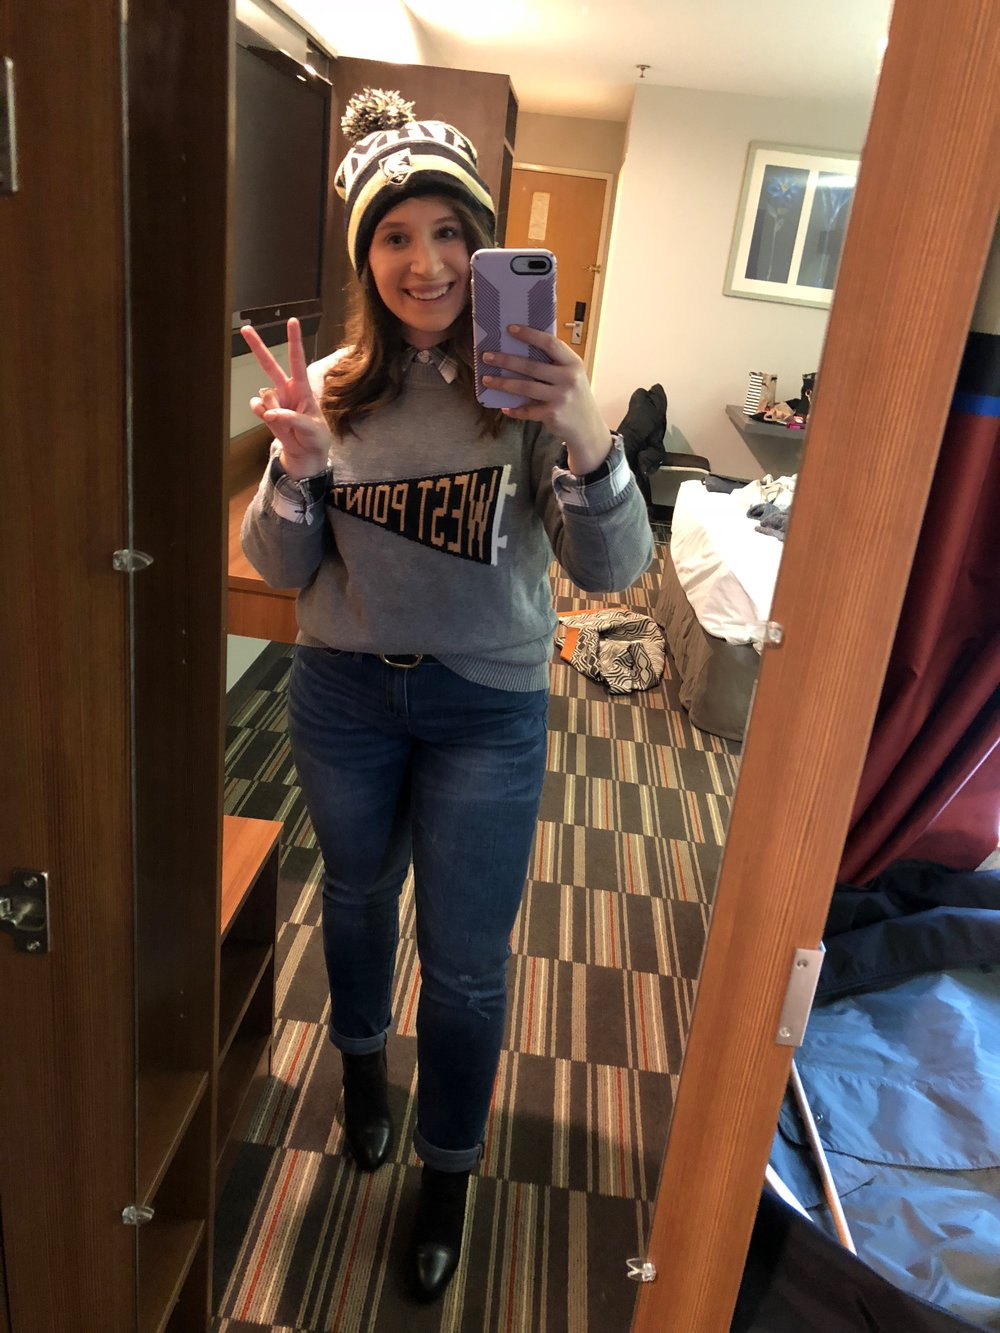 west point football outfit, army football outfit, what to wear to an army game, army football, army navy football, what to wear to army navy, army navy football game outfit